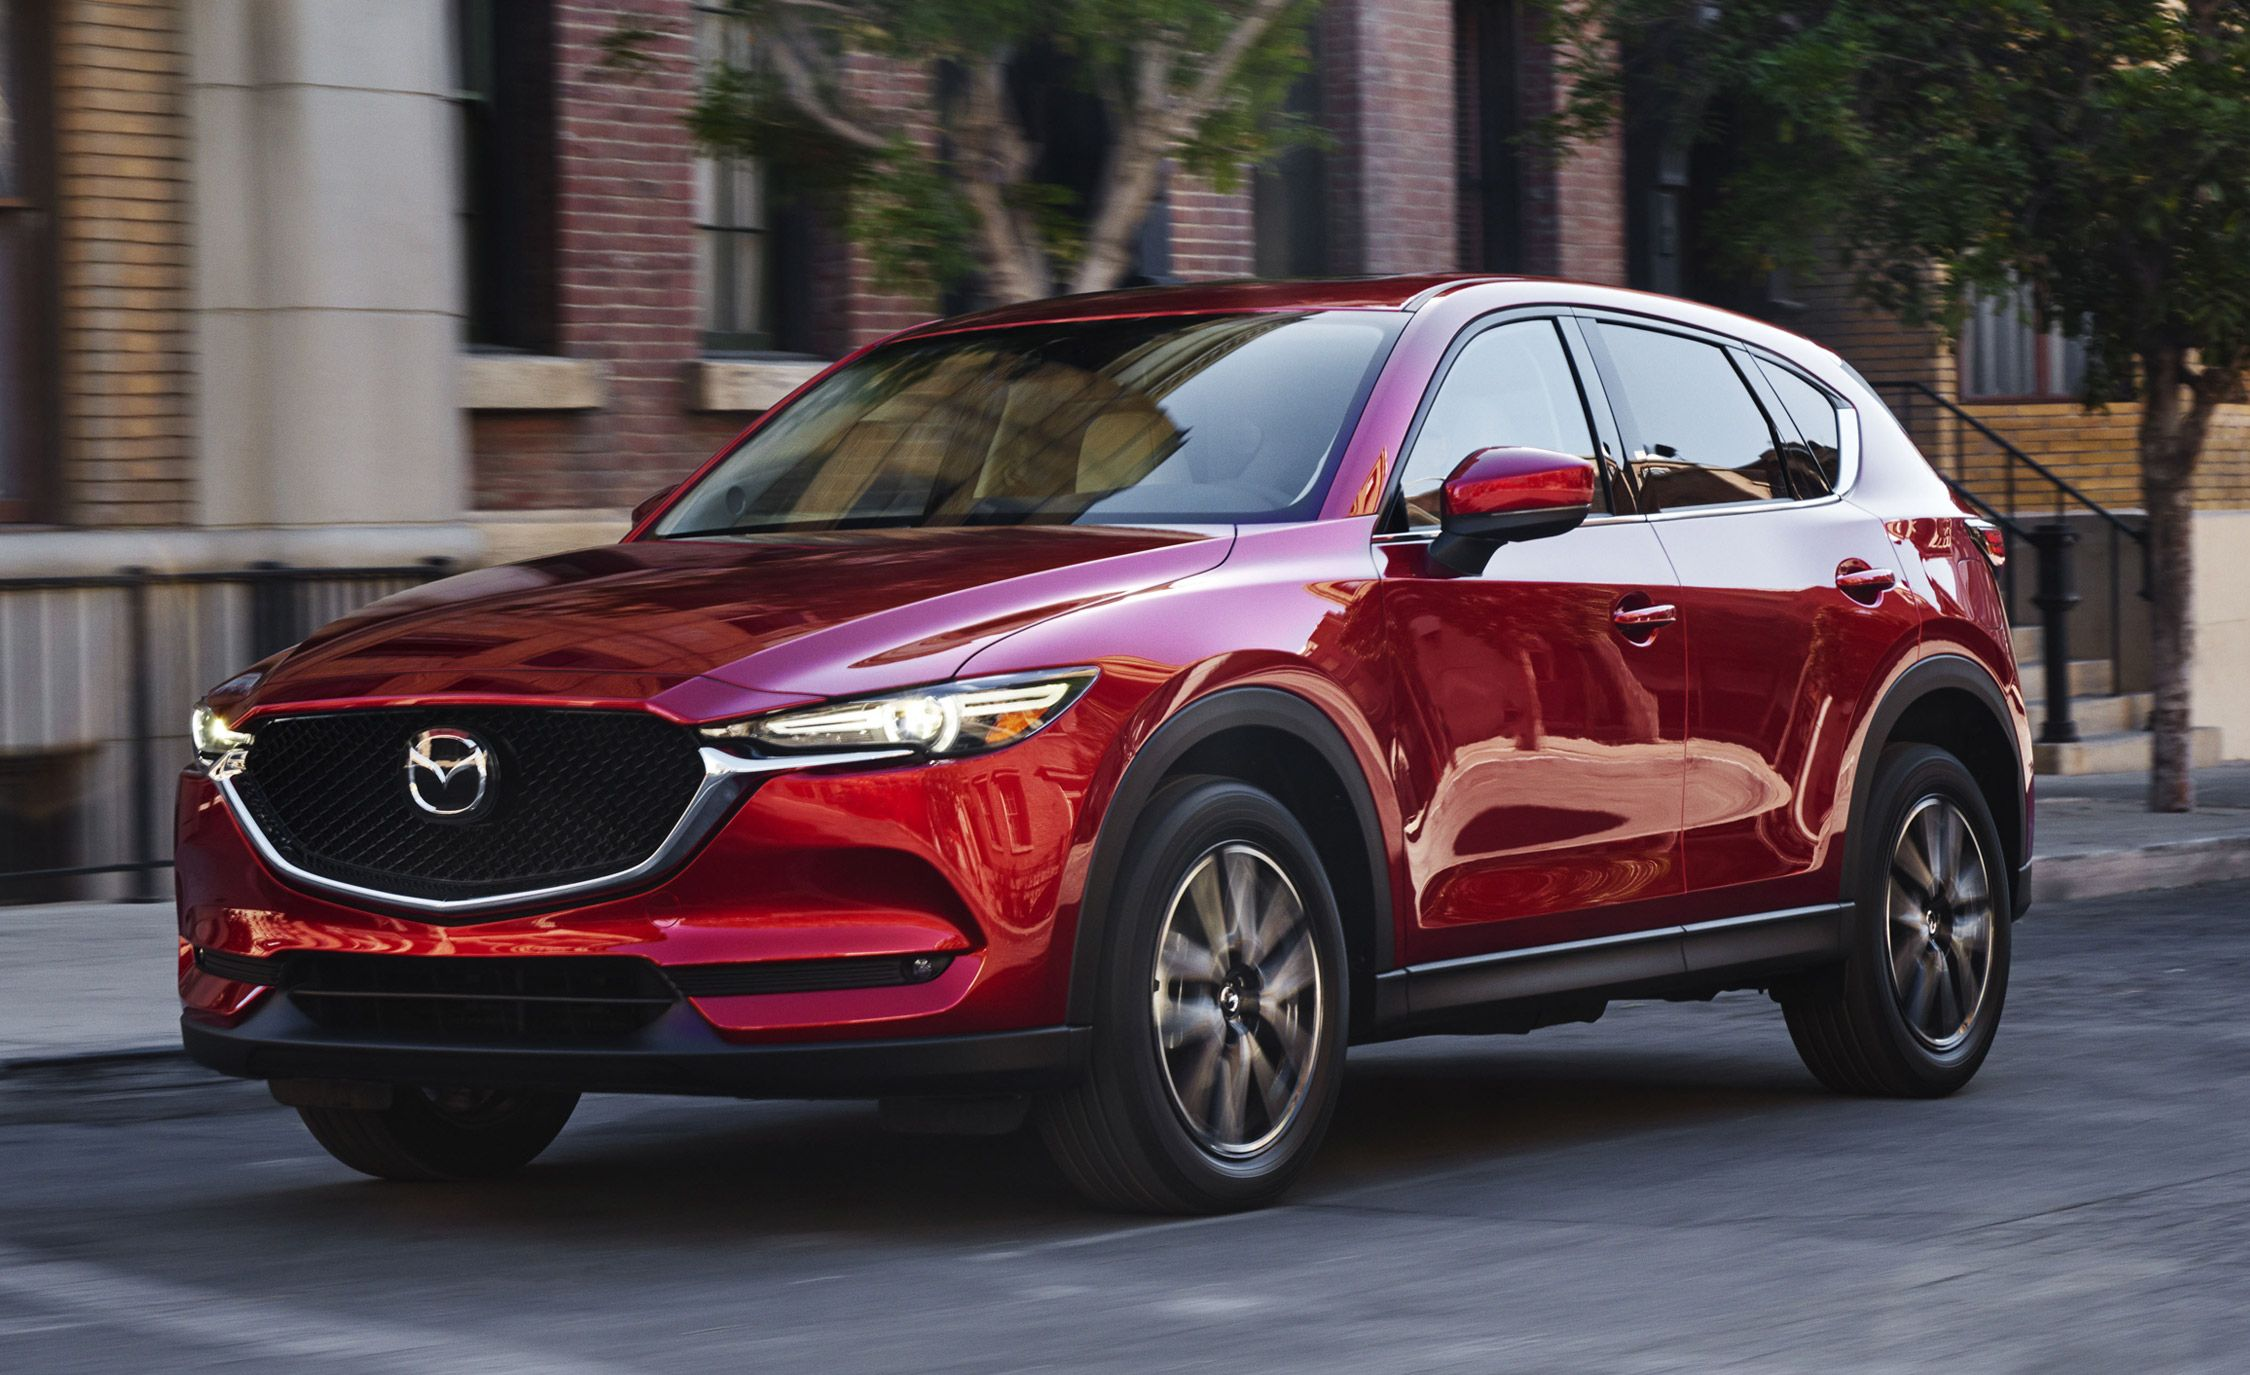 2018 mazda cx-5 pictures | photo gallery | car and driver